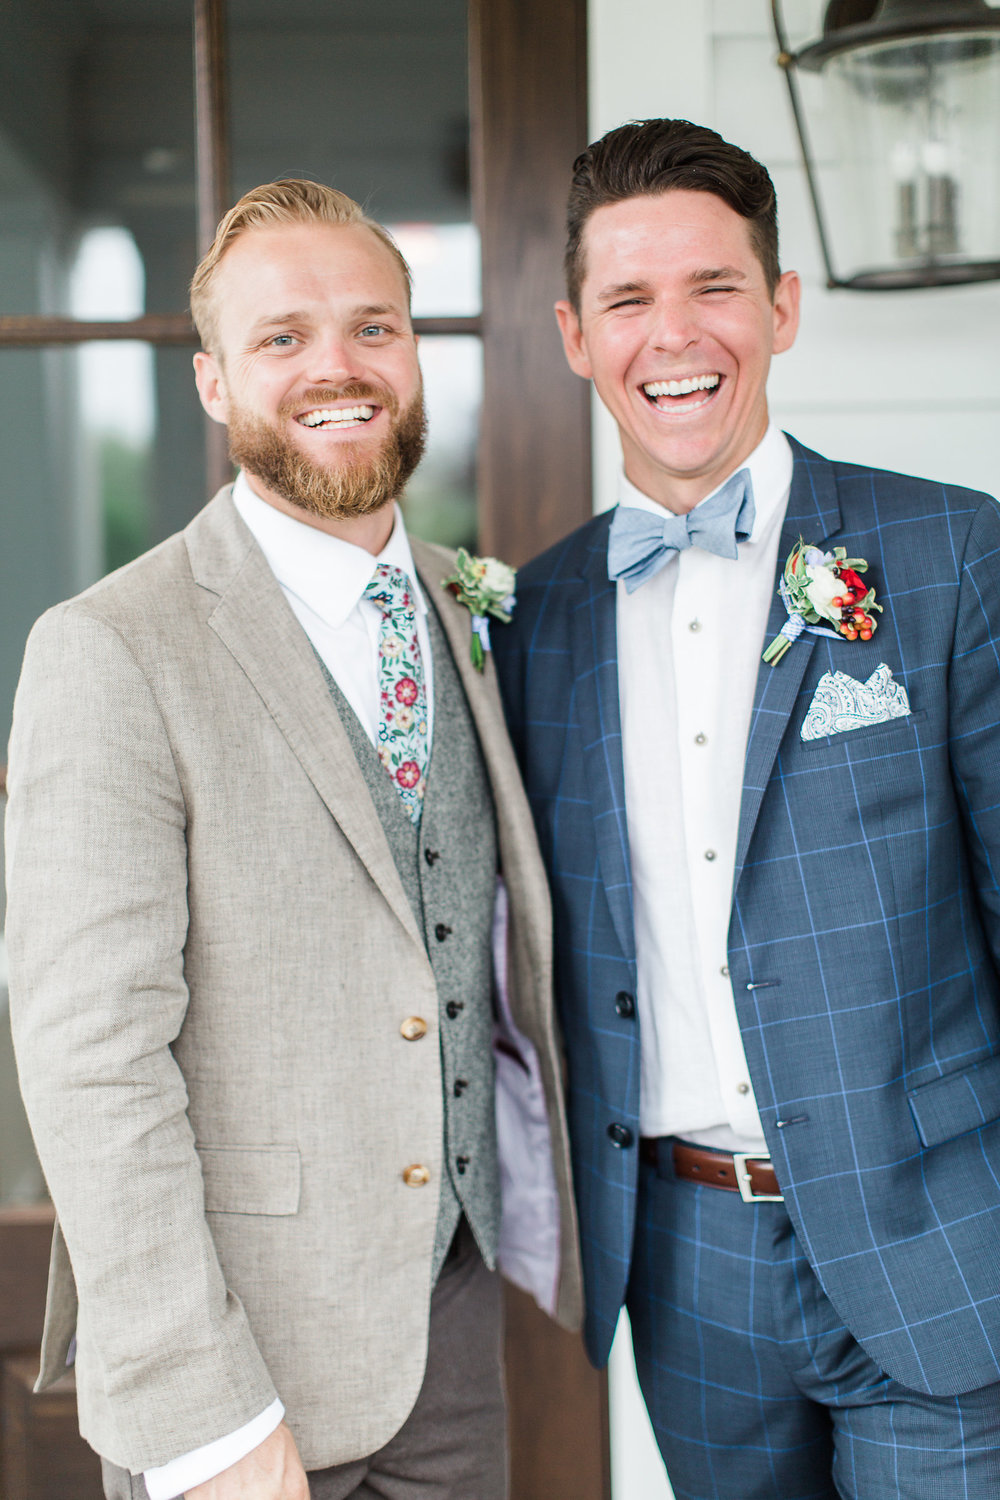 Mix and Match Groomsmen Attire Color Schemes